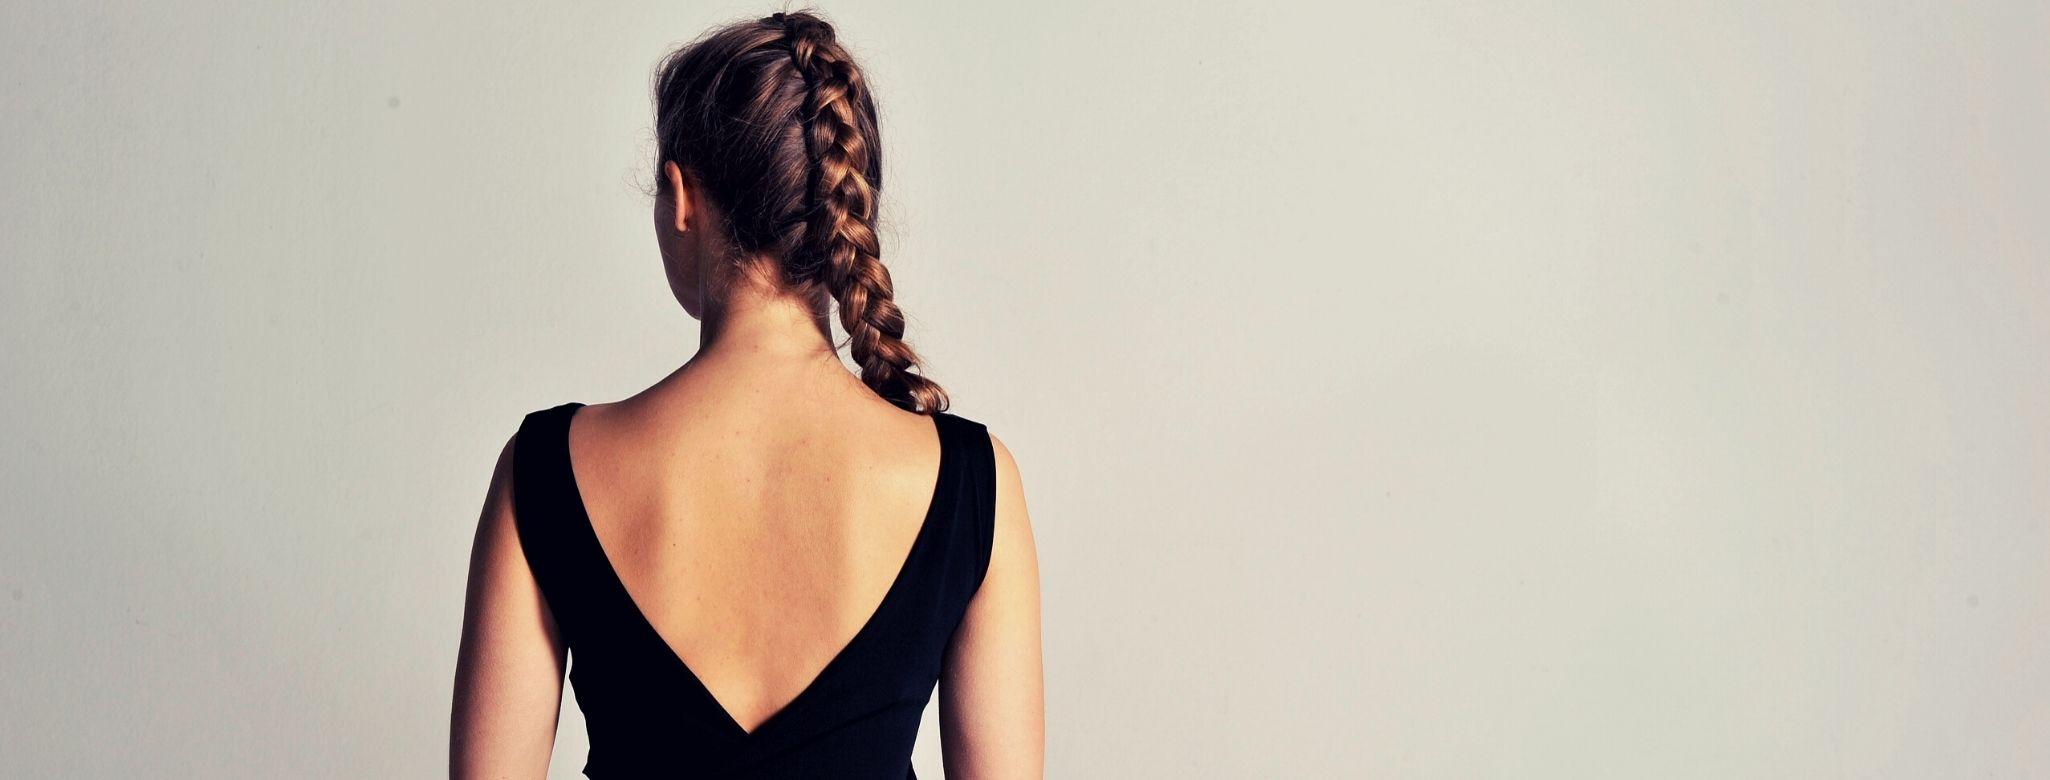 killer hairstyles for tango dancers